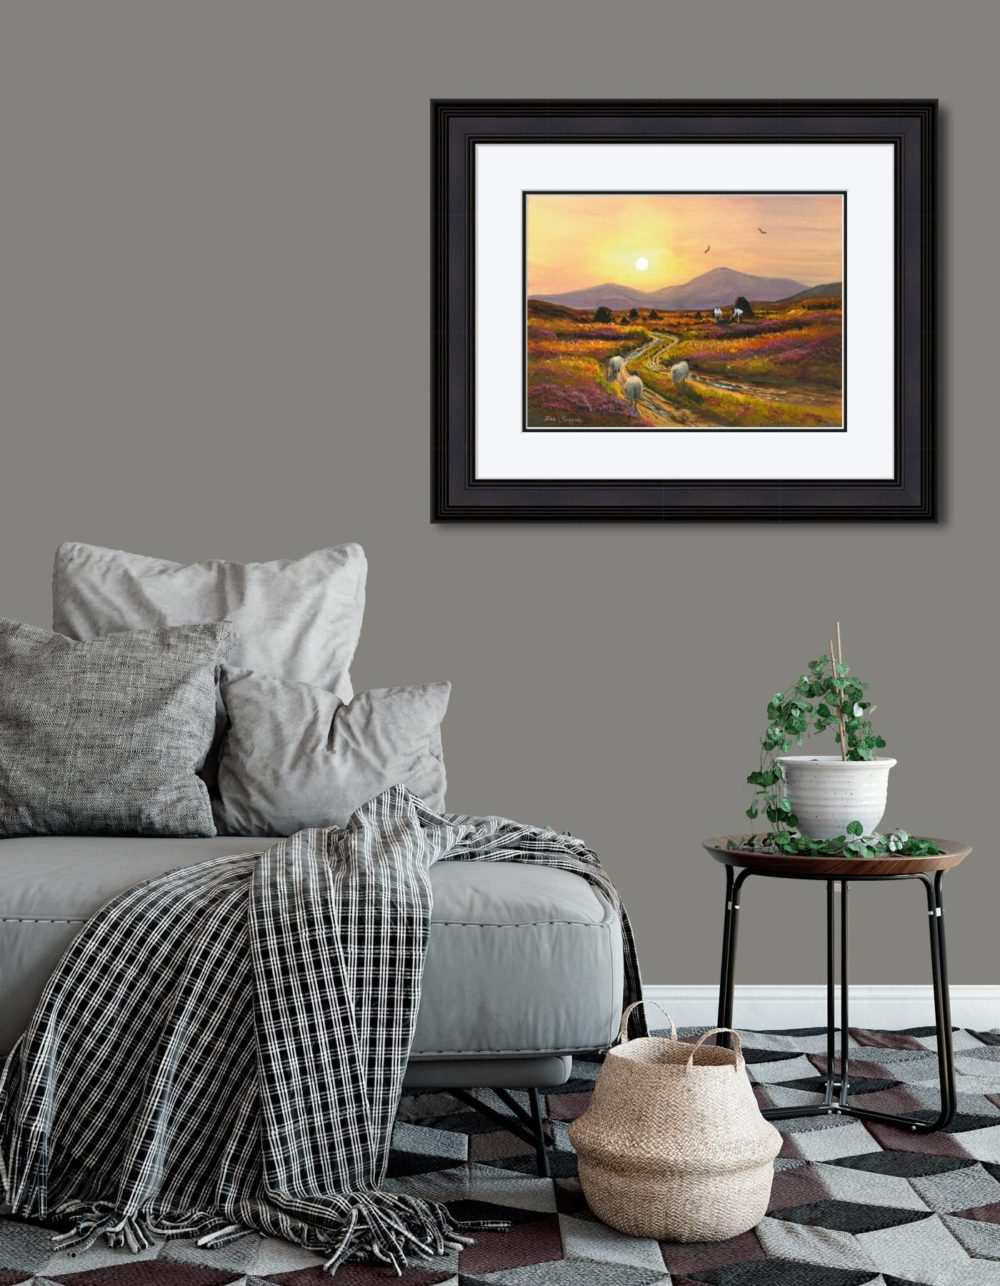 Gathering Turf At Twilight Print (Large) in Black Frame in Room